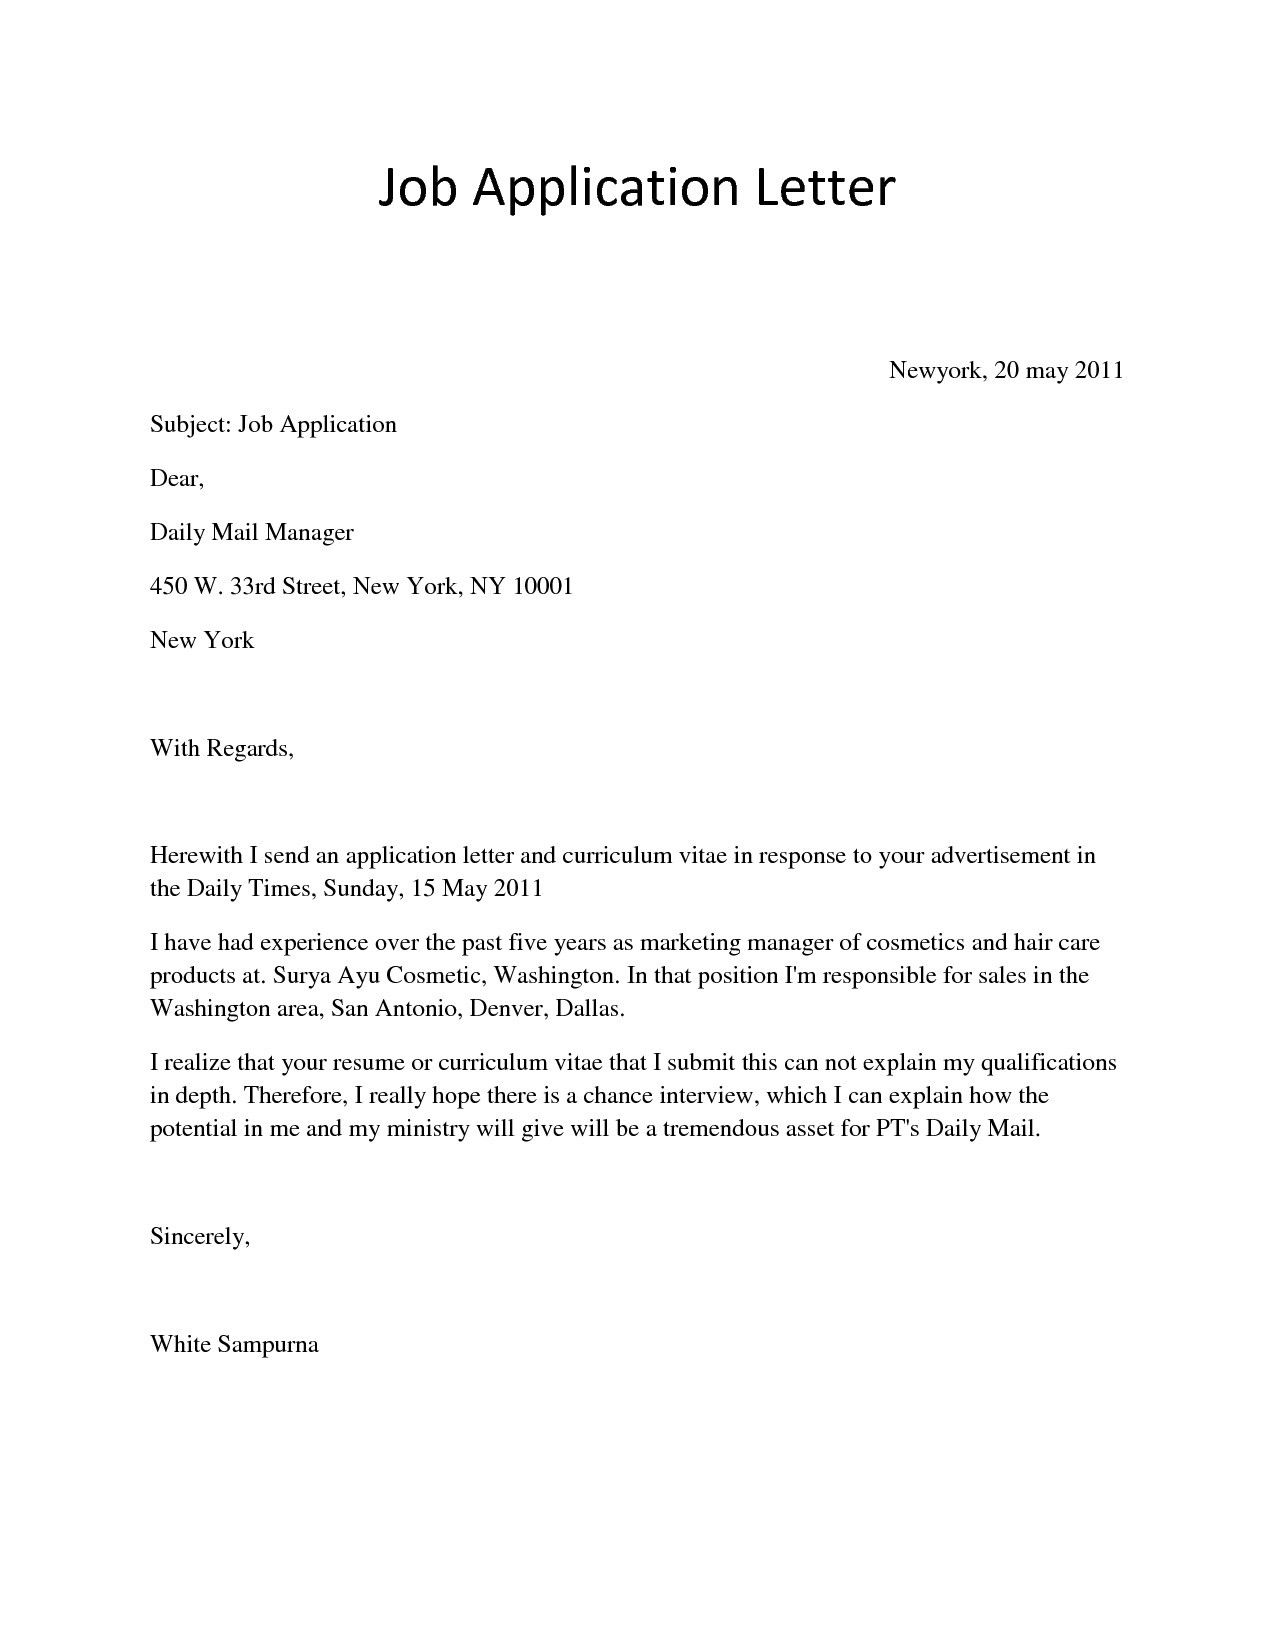 Cover Letter Template Ngo Simple Job Application Letter Job